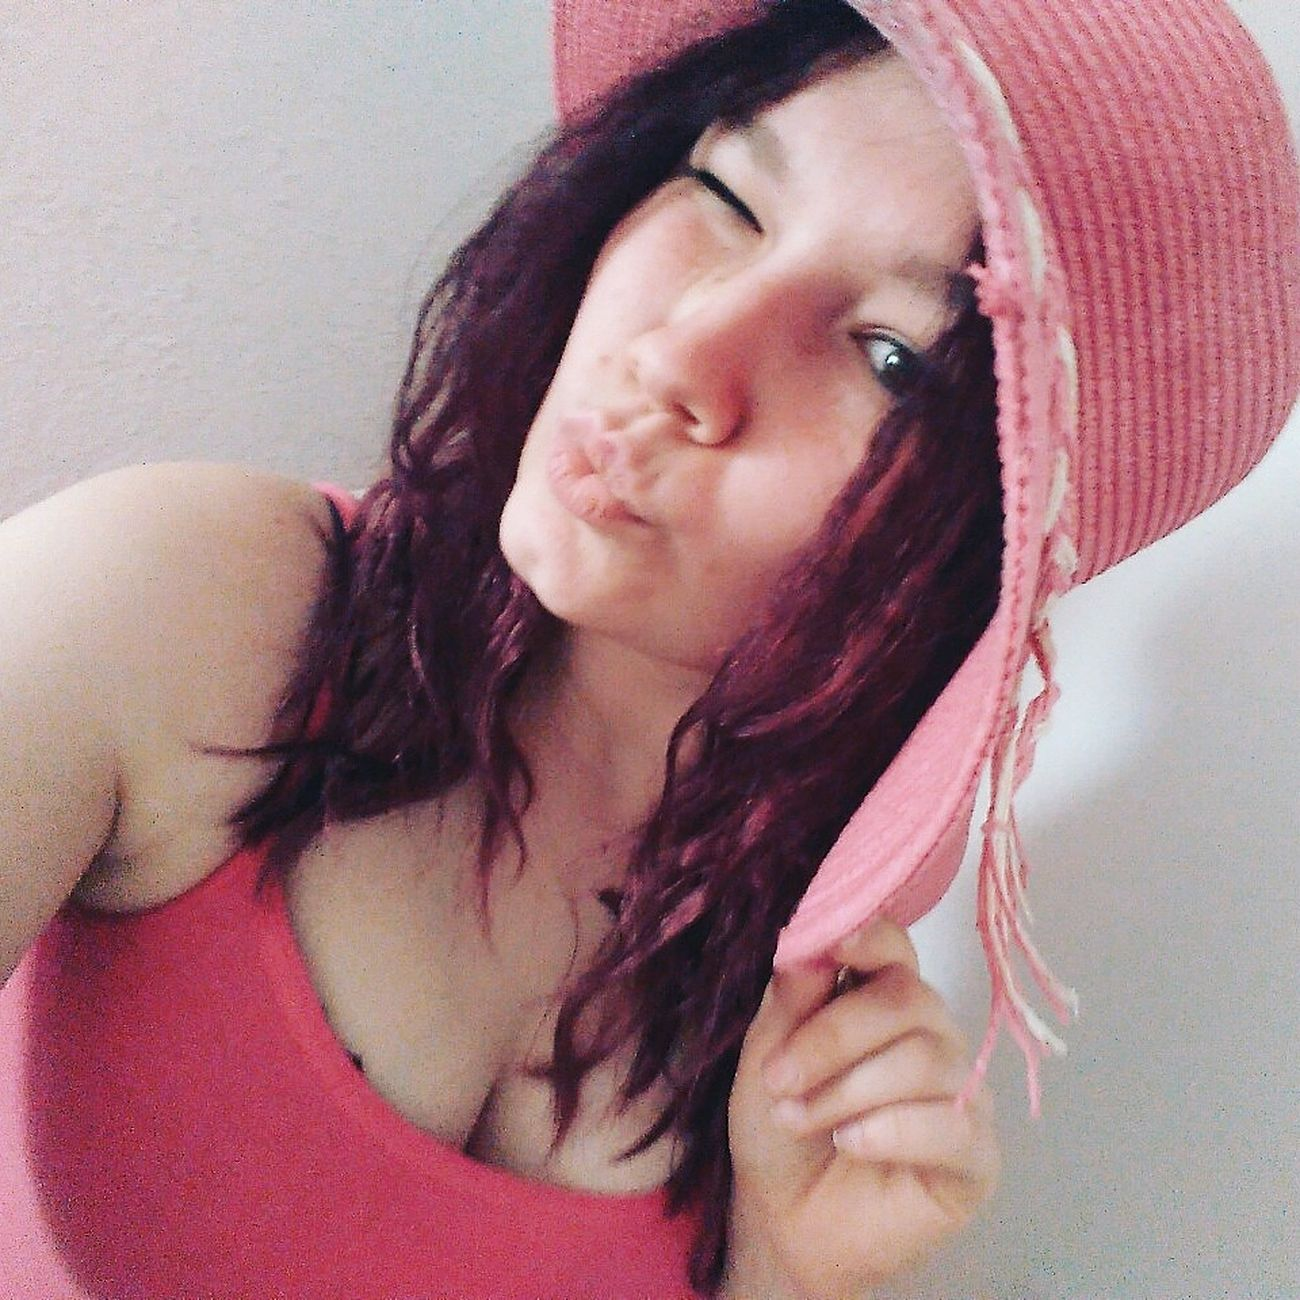 🙈🙉👌🙊 UnBeso ModelPose  Smile ✌ Lovely Guapa Beamodel Pelovioleta Pretty Girl SiempreFeliz That's Me Photography Modelgirl Hairstyle Pink Hat Summerhats